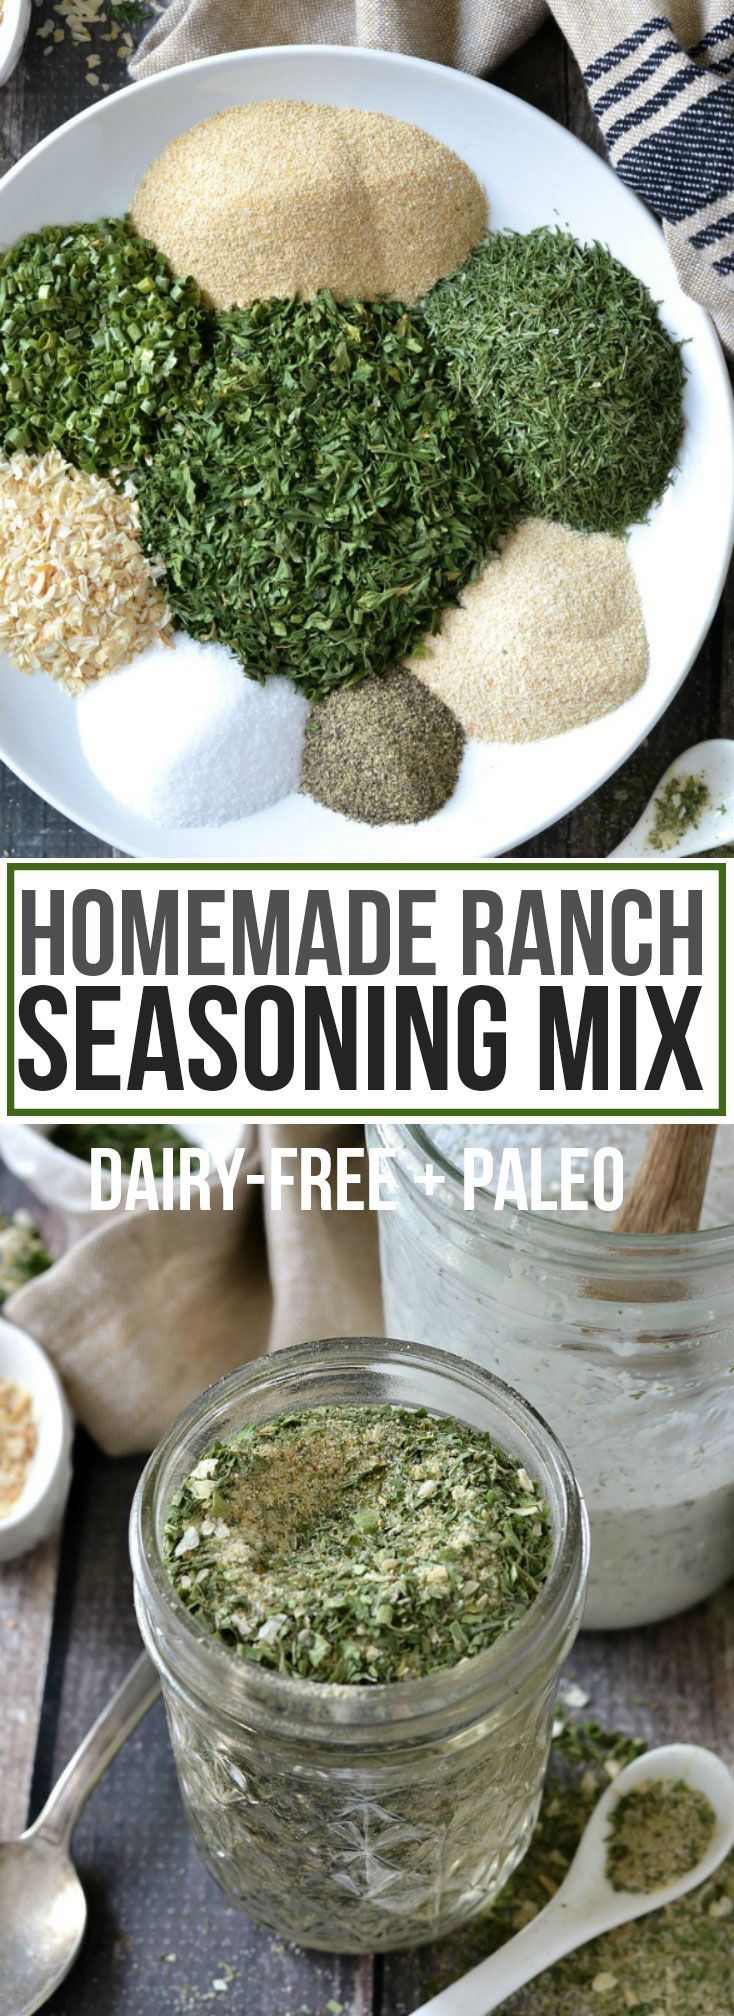 Homemade Ranch Seasoning Mix (Dairy-Free + Paleo) - Mother Thyme